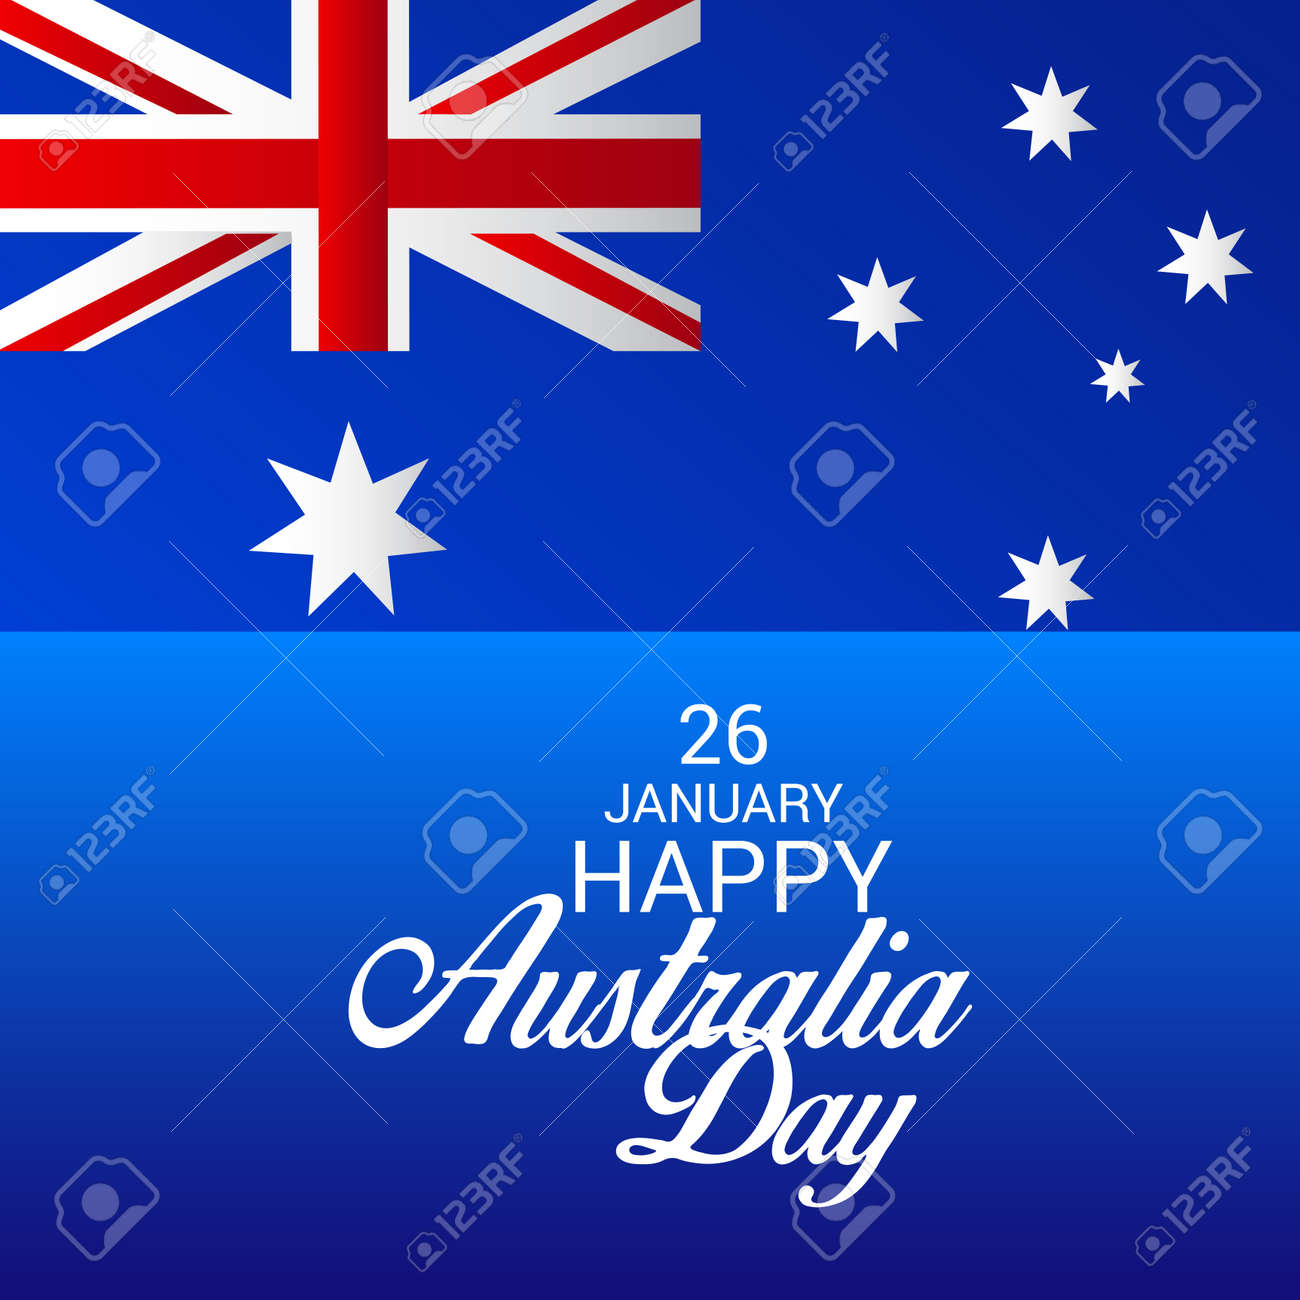 Happy Australia Day Greeting Card Design Royalty Free Cliparts